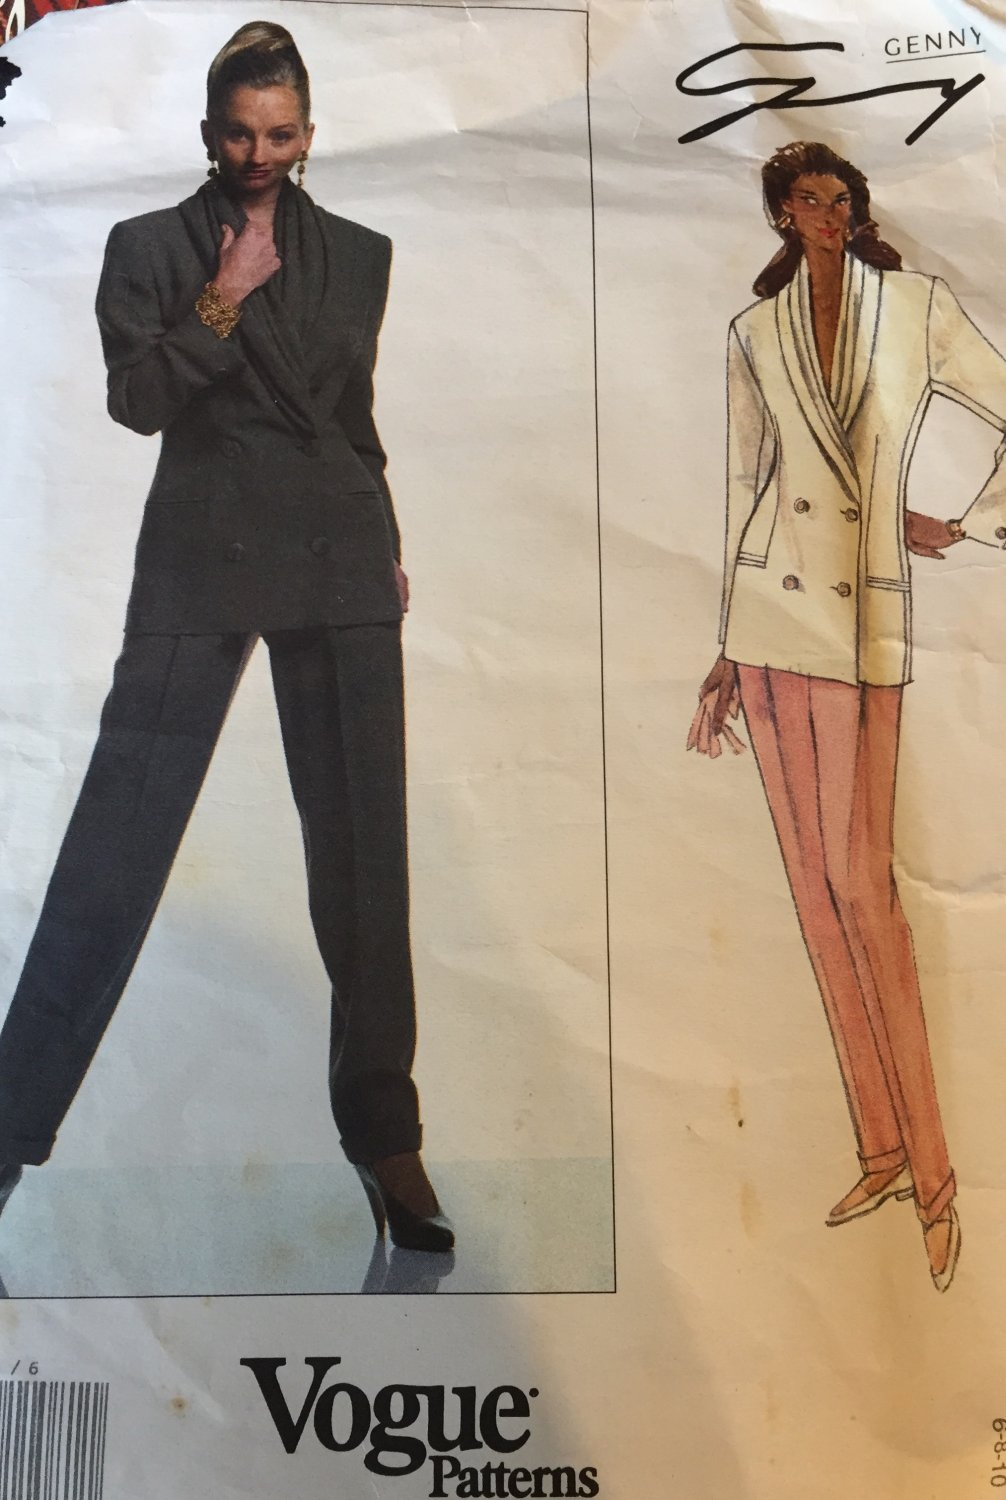 Vogue Designer Original 2721 Genny Jacket and Pants Sewing Pattern Size 6 8 10